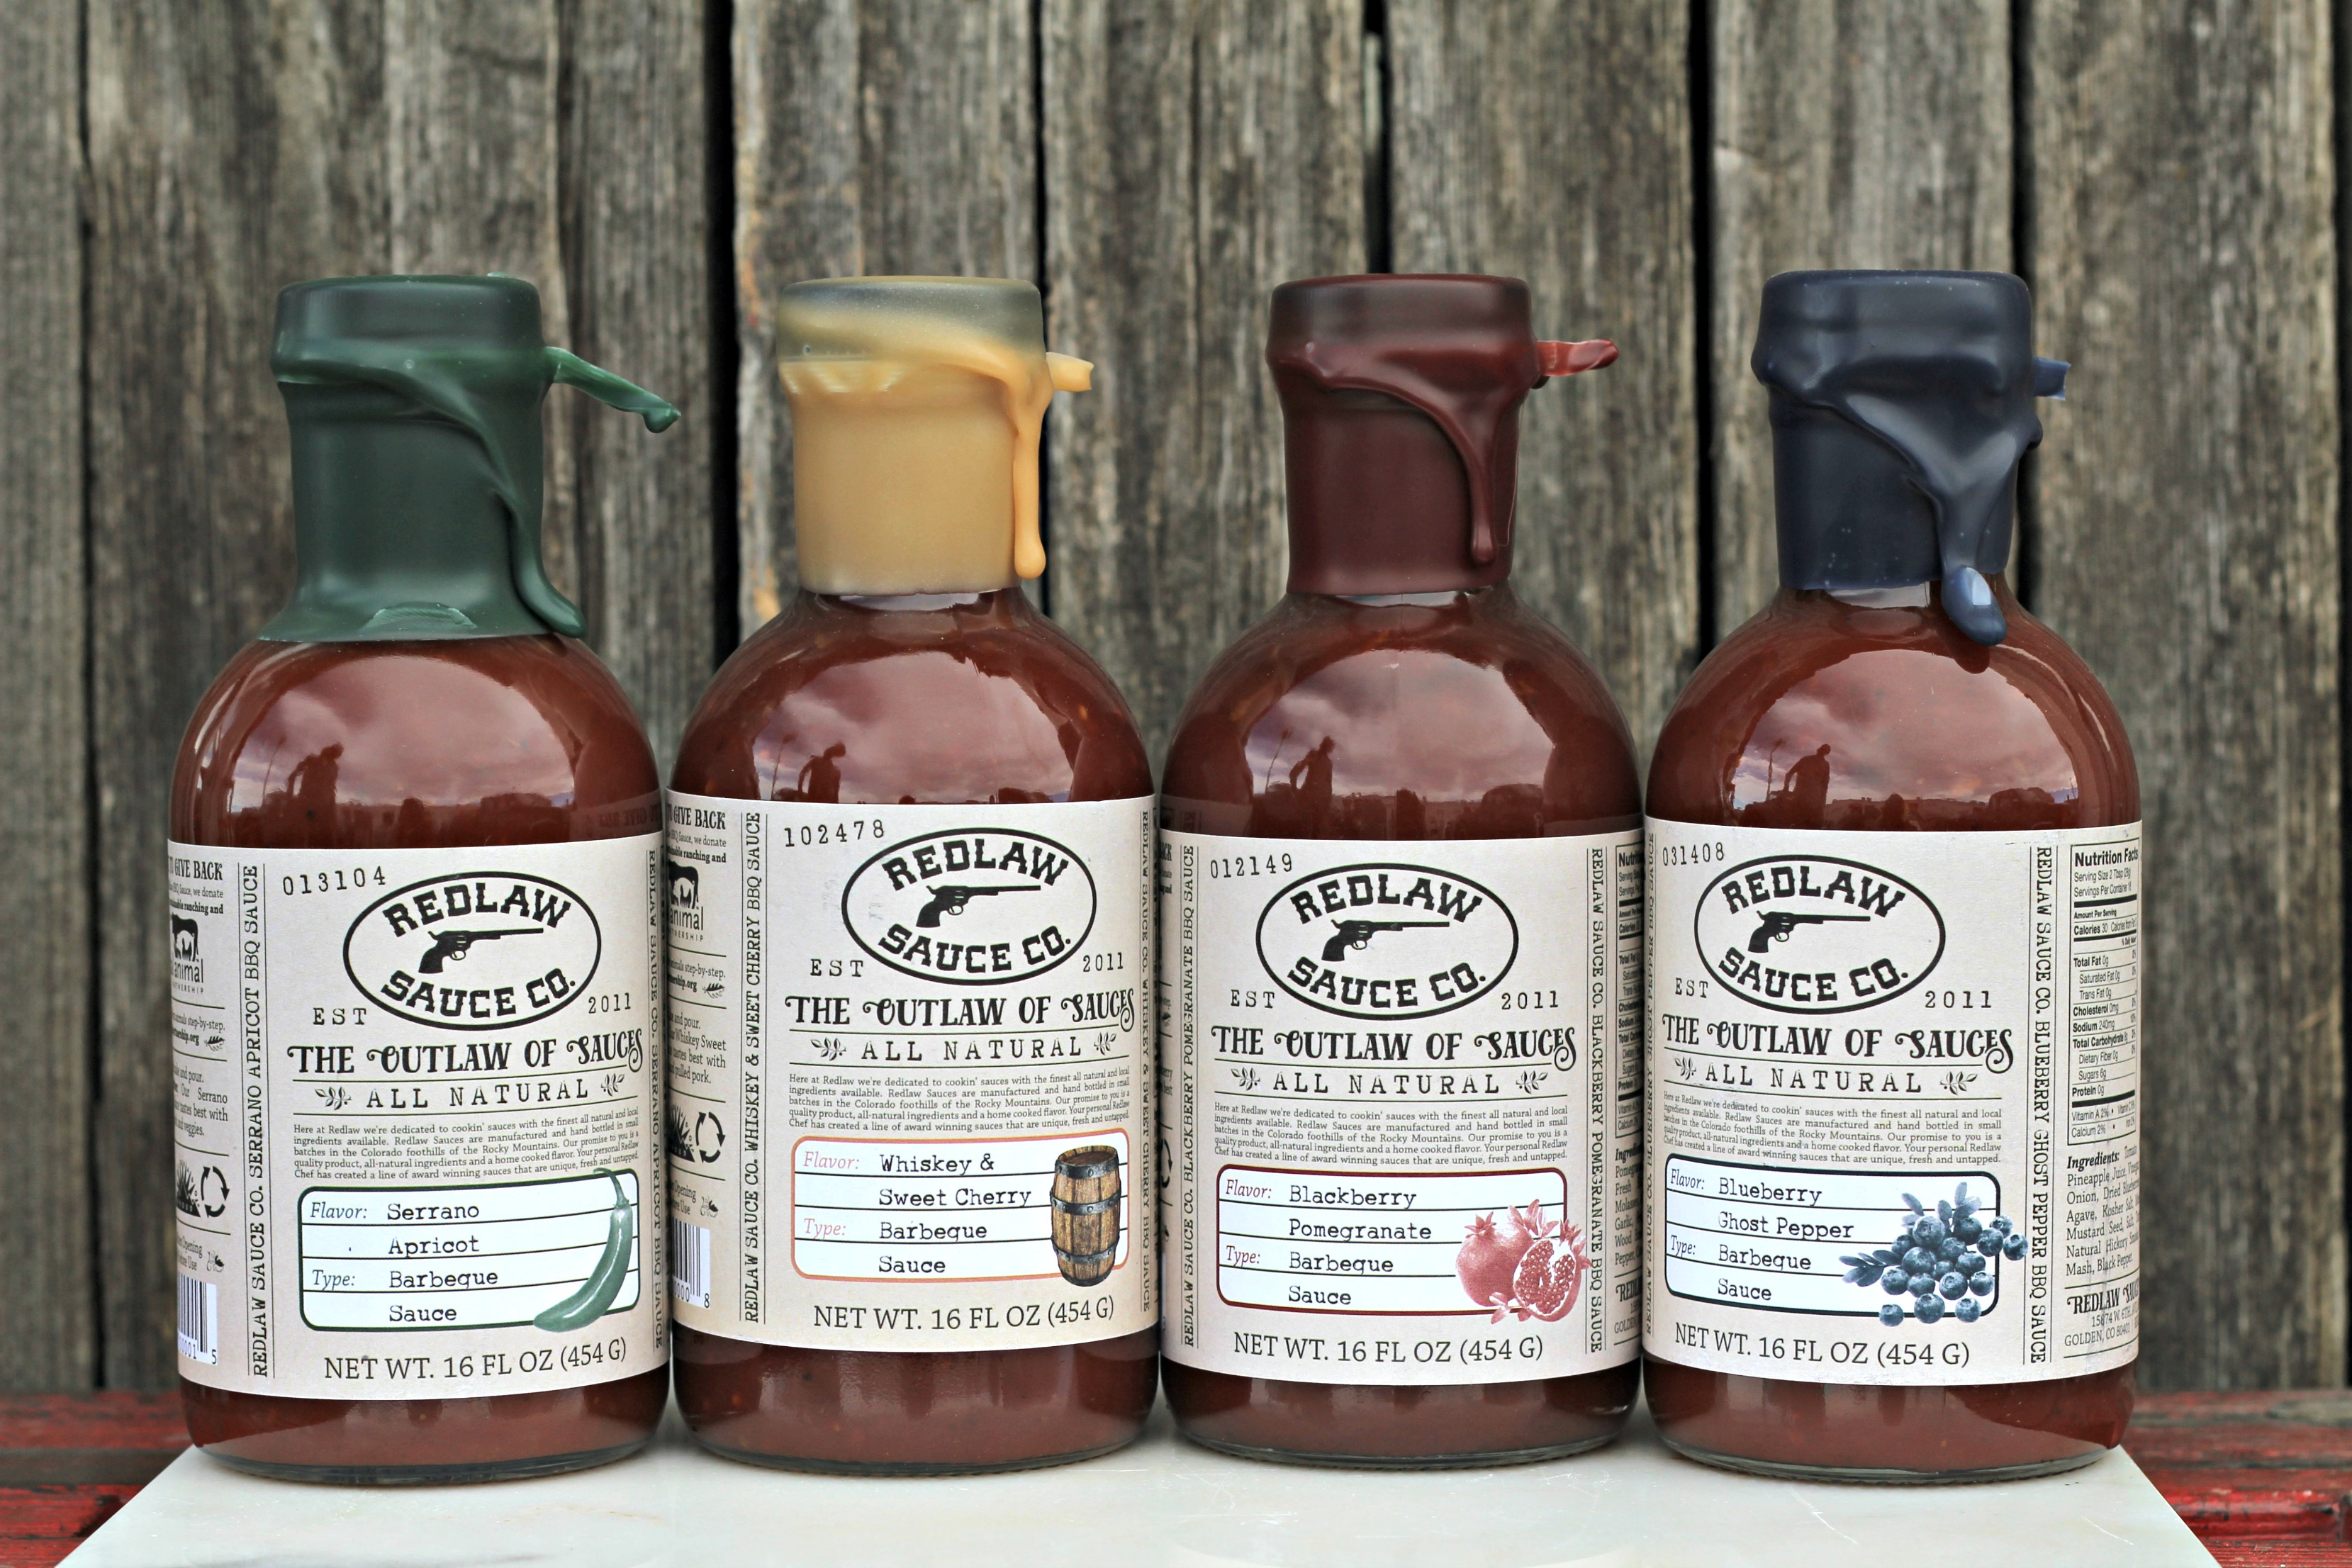 Redlaw Sauce Co. Allies with Global Animal Partnership: BBQ, hot sauce maker to donate five percent of profits to G.A.P.